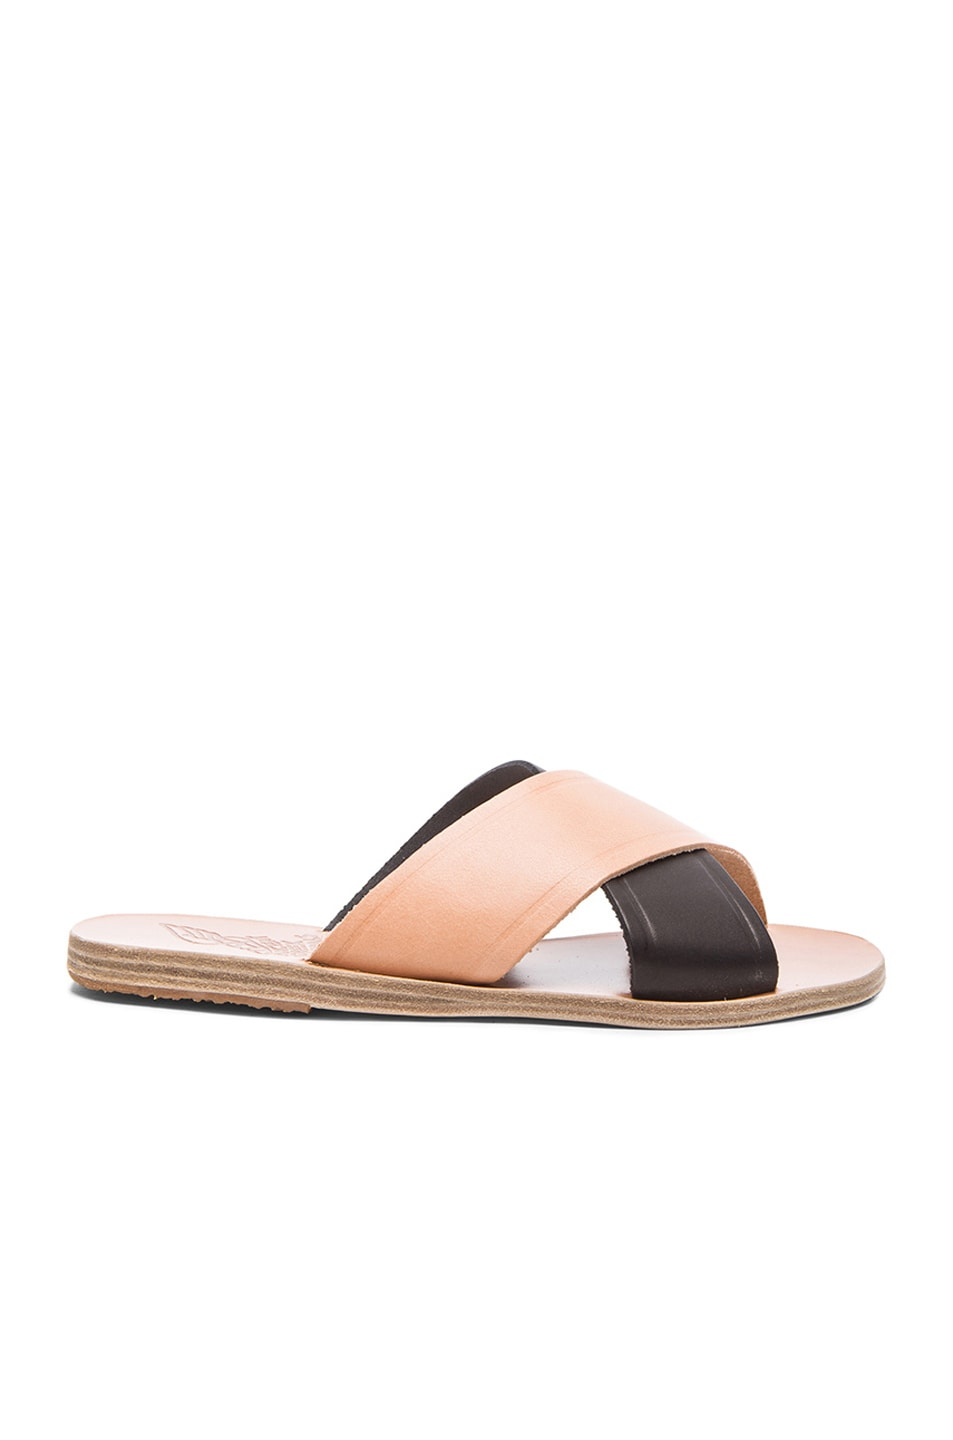 Image 1 of Ancient Greek Sandals Thais Leather Sandals in Natural & Black